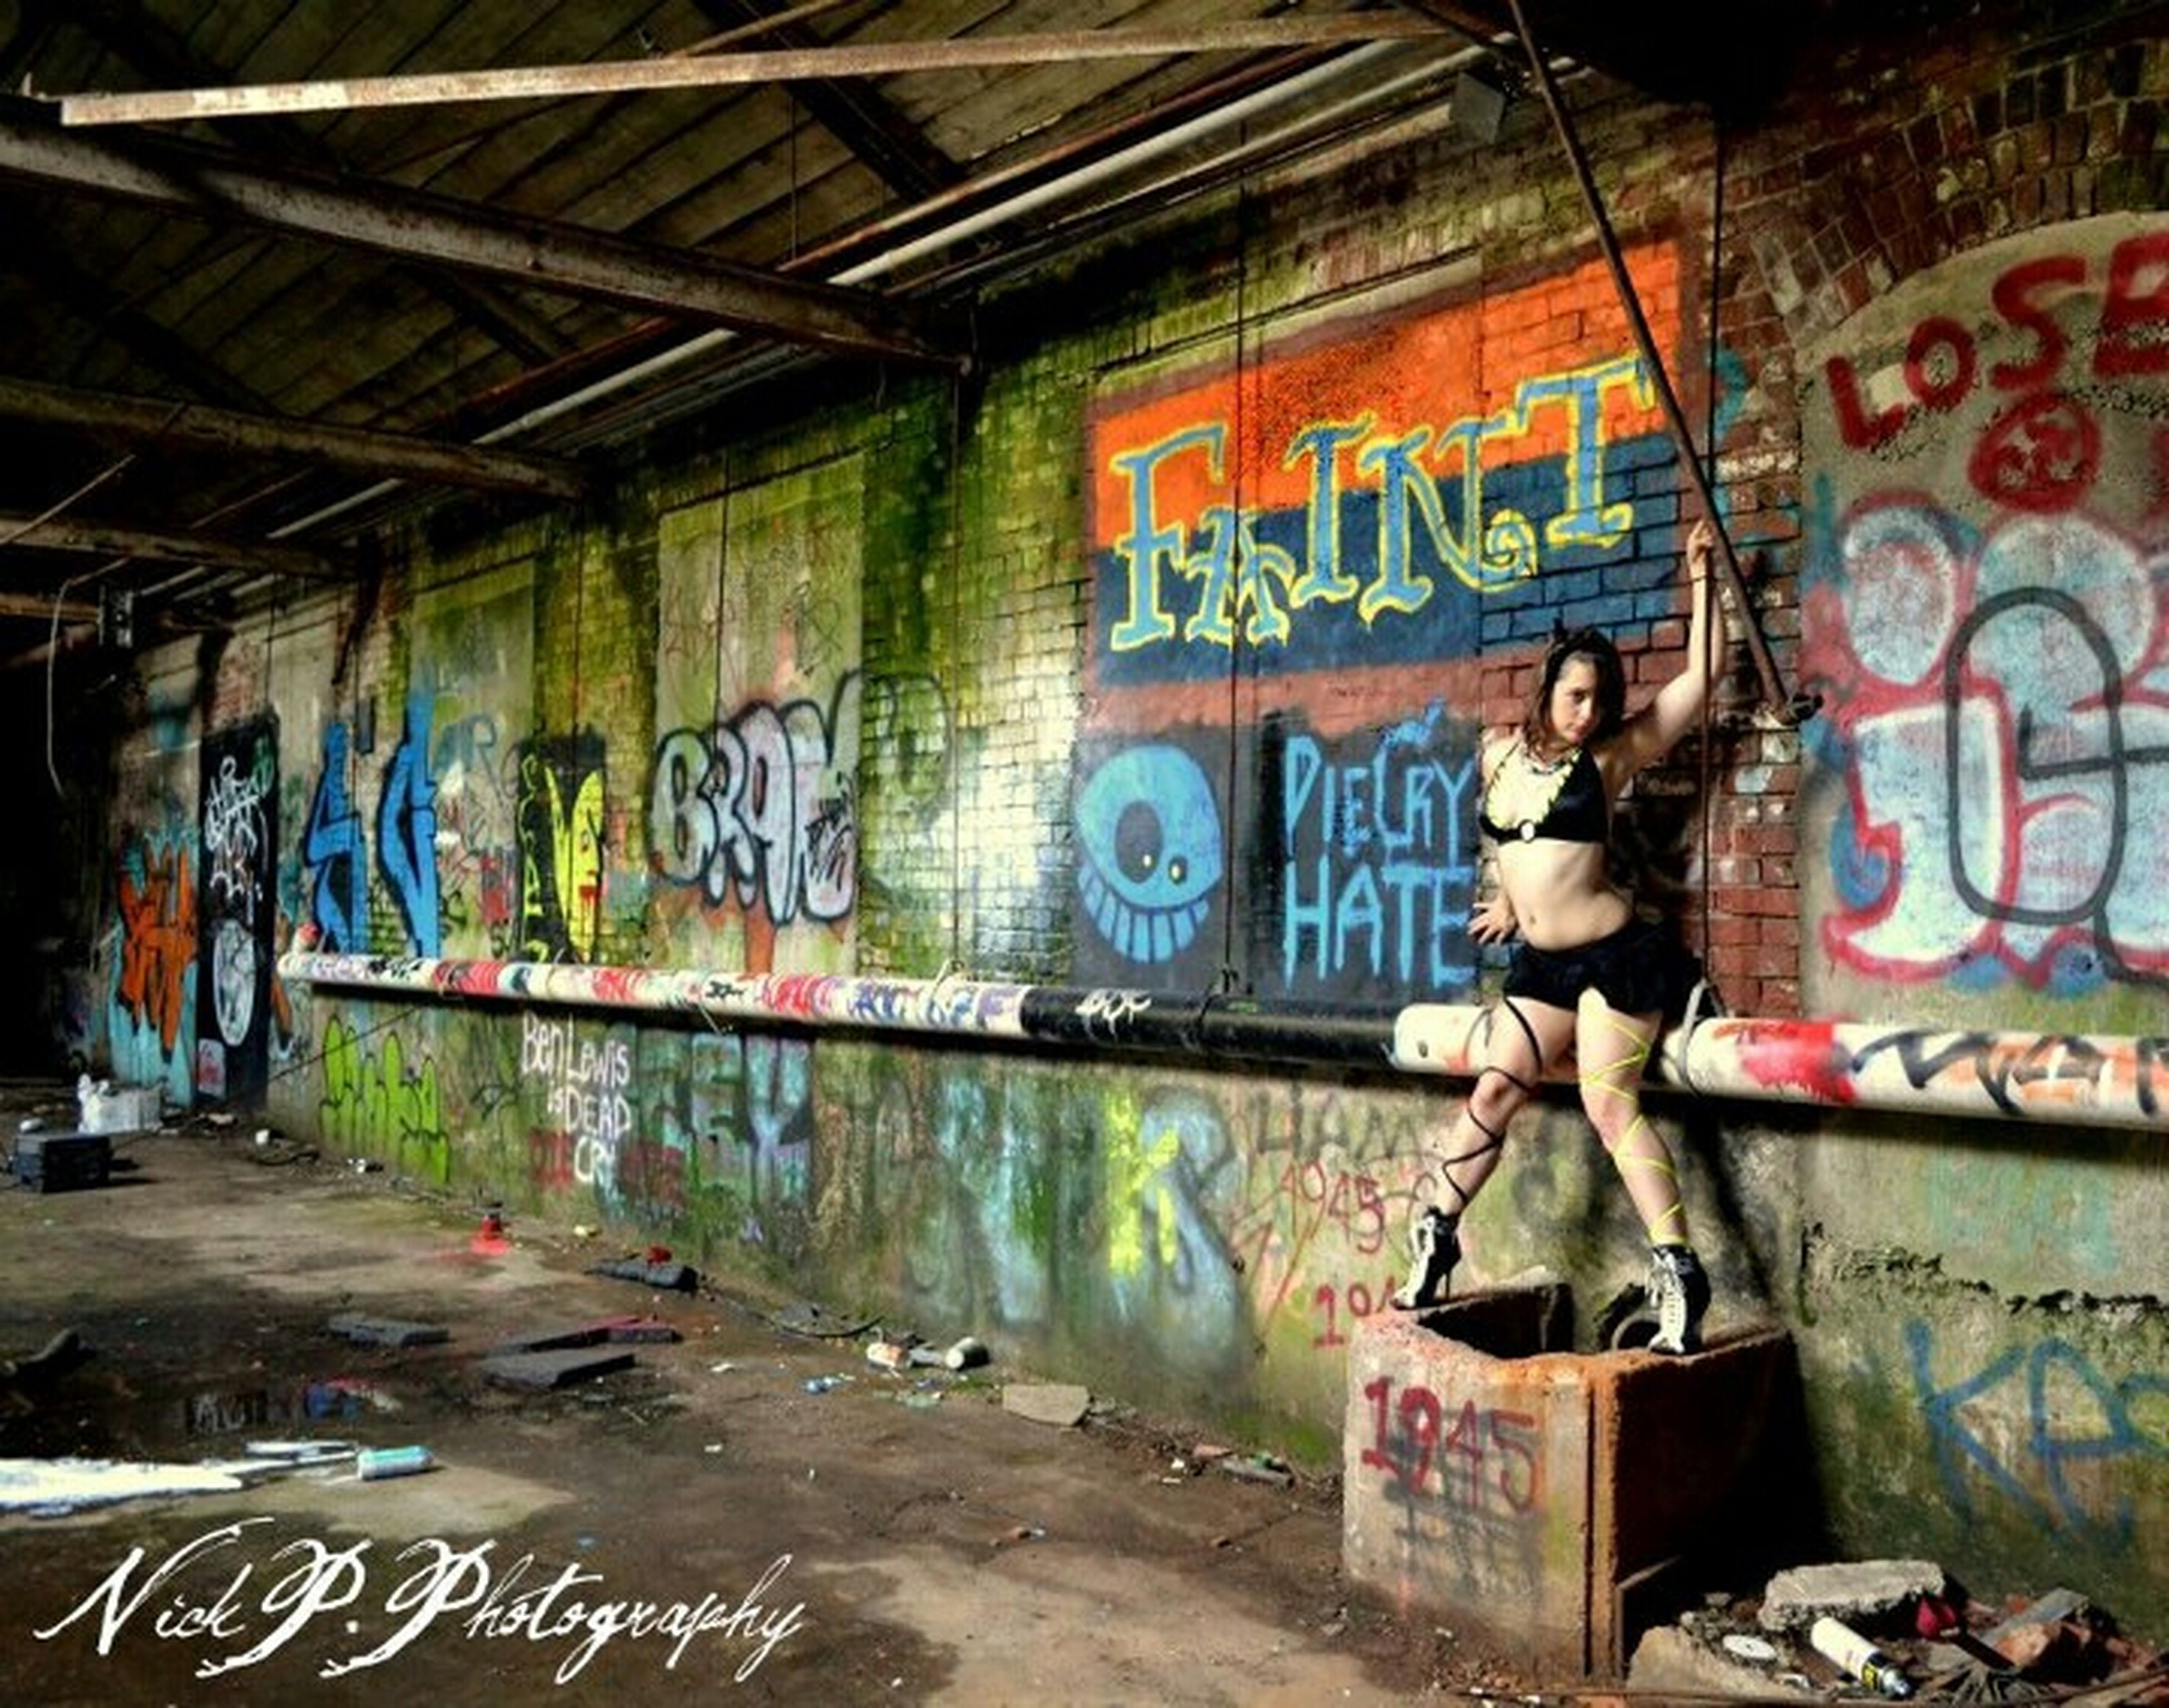 graffiti, art, art and craft, creativity, abandoned, messy, deterioration, damaged, indoors, wall - building feature, obsolete, run-down, built structure, vandalism, architecture, human representation, street art, text, multi colored, old